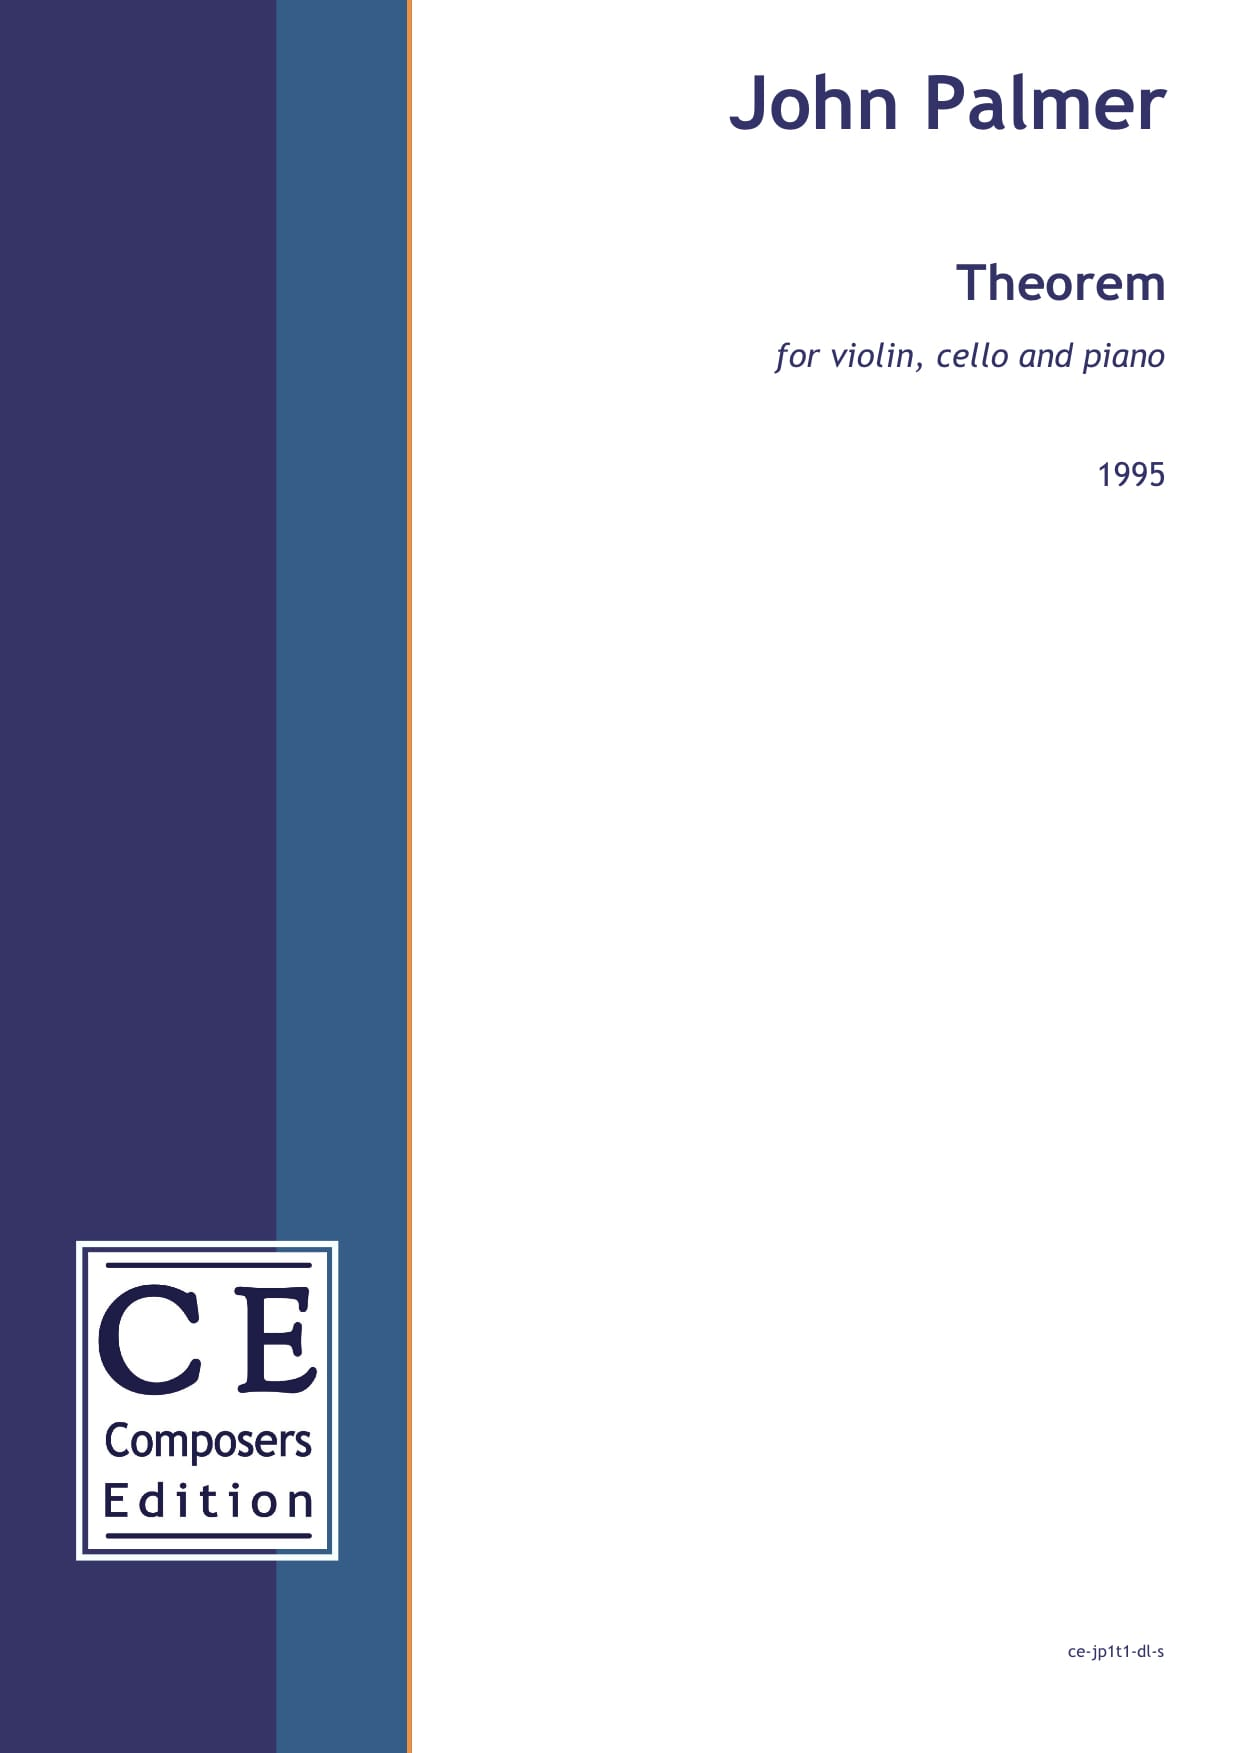 John Palmer: Theorem for violin, cello and piano